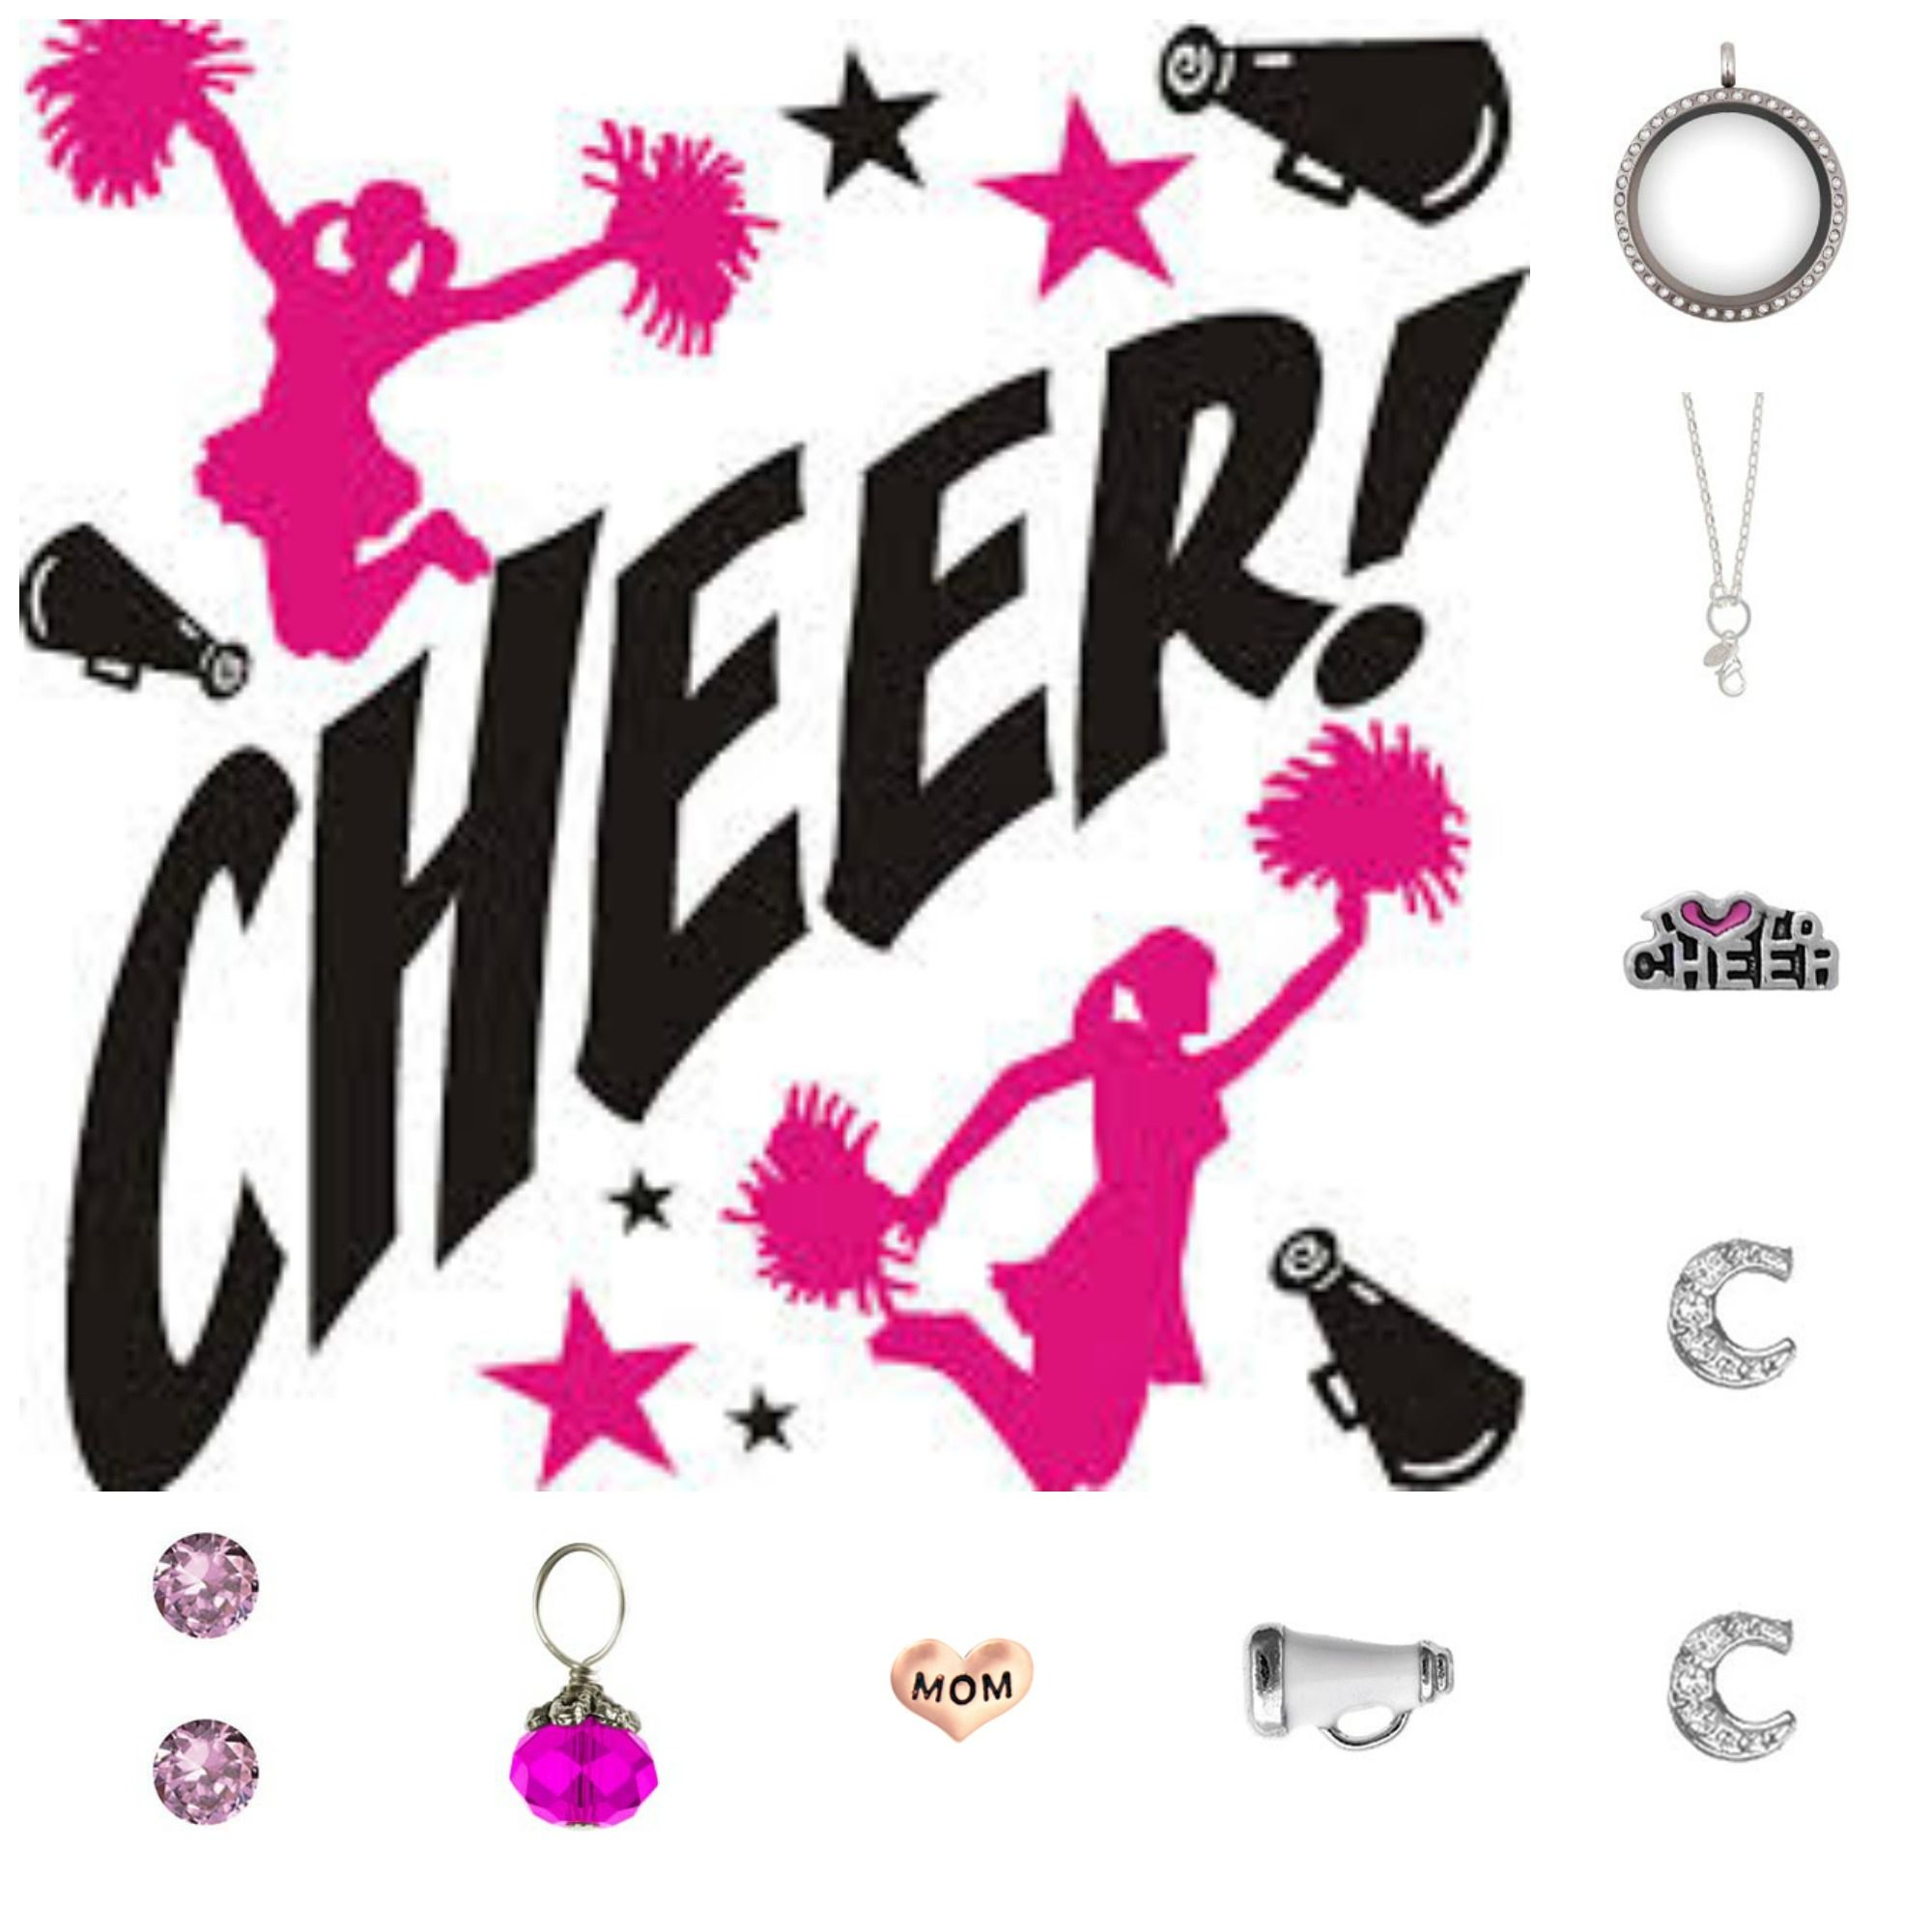 For All Those Dedicated Cheer Mom S Or Cheerleaders Contact Cassidy And Wade Oliver Www Facebook Com 6luckycharms Or Coliver Origamio Estampado S A Selfies